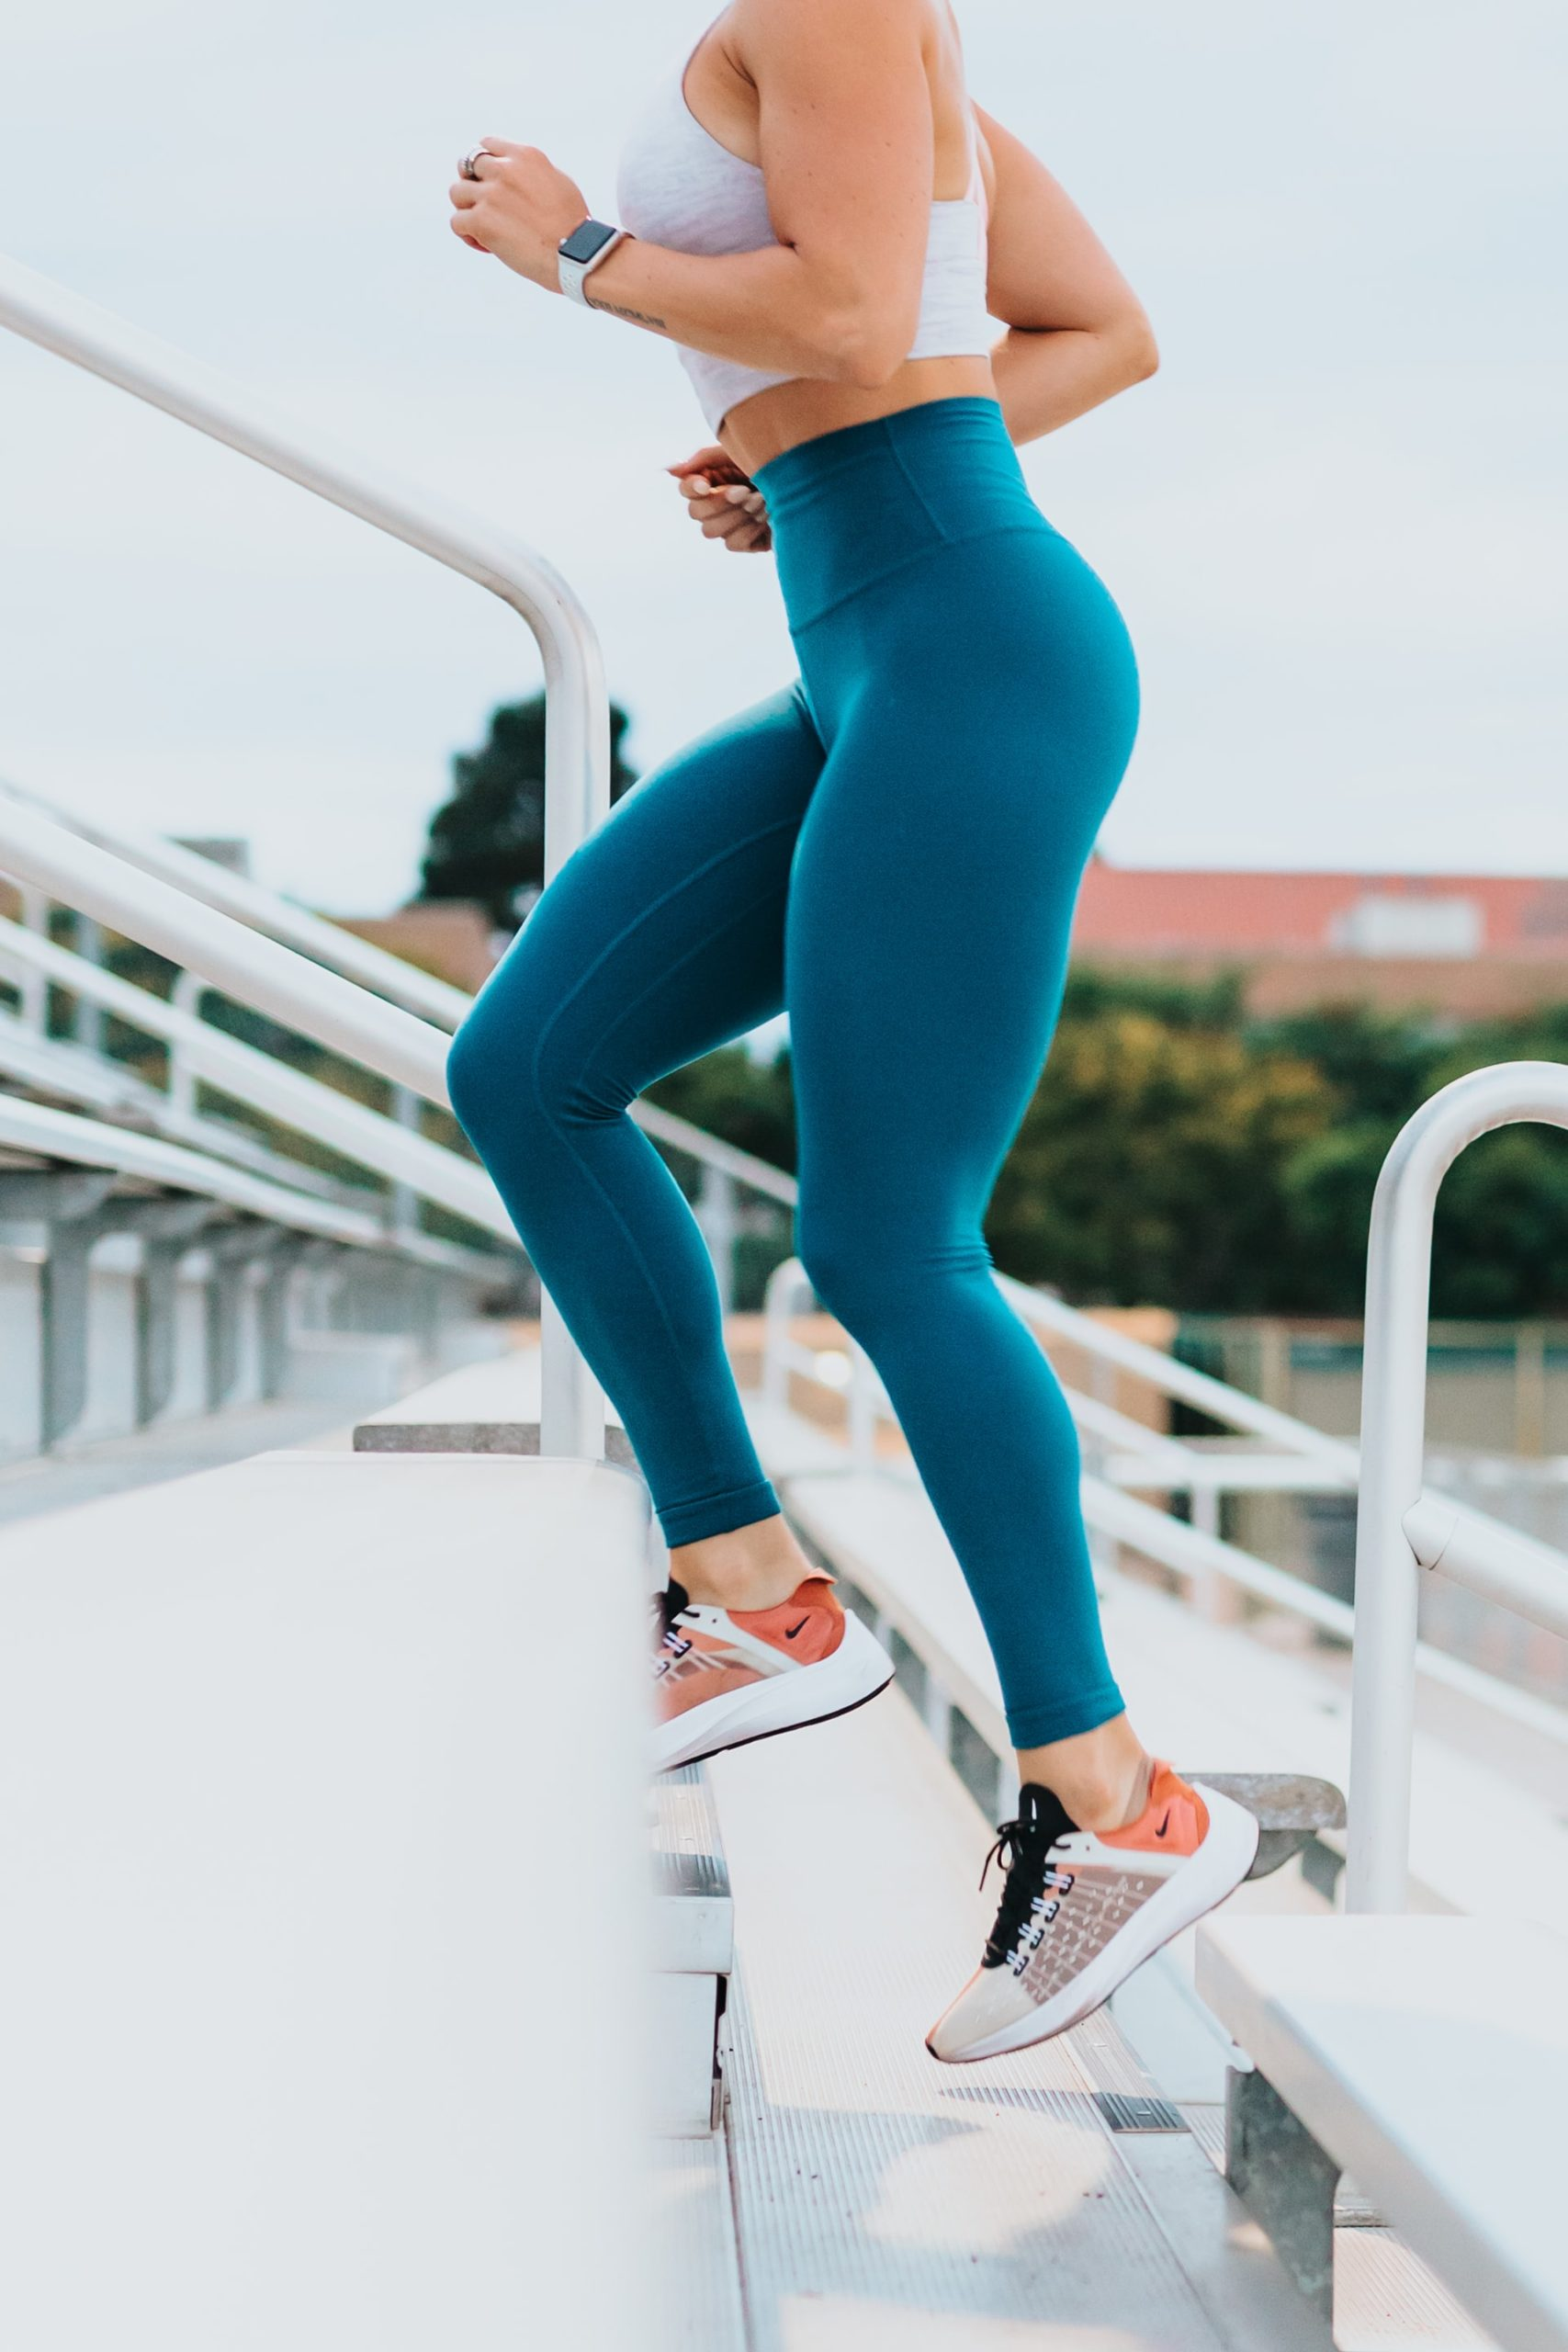 Running economy increase thanks to your core